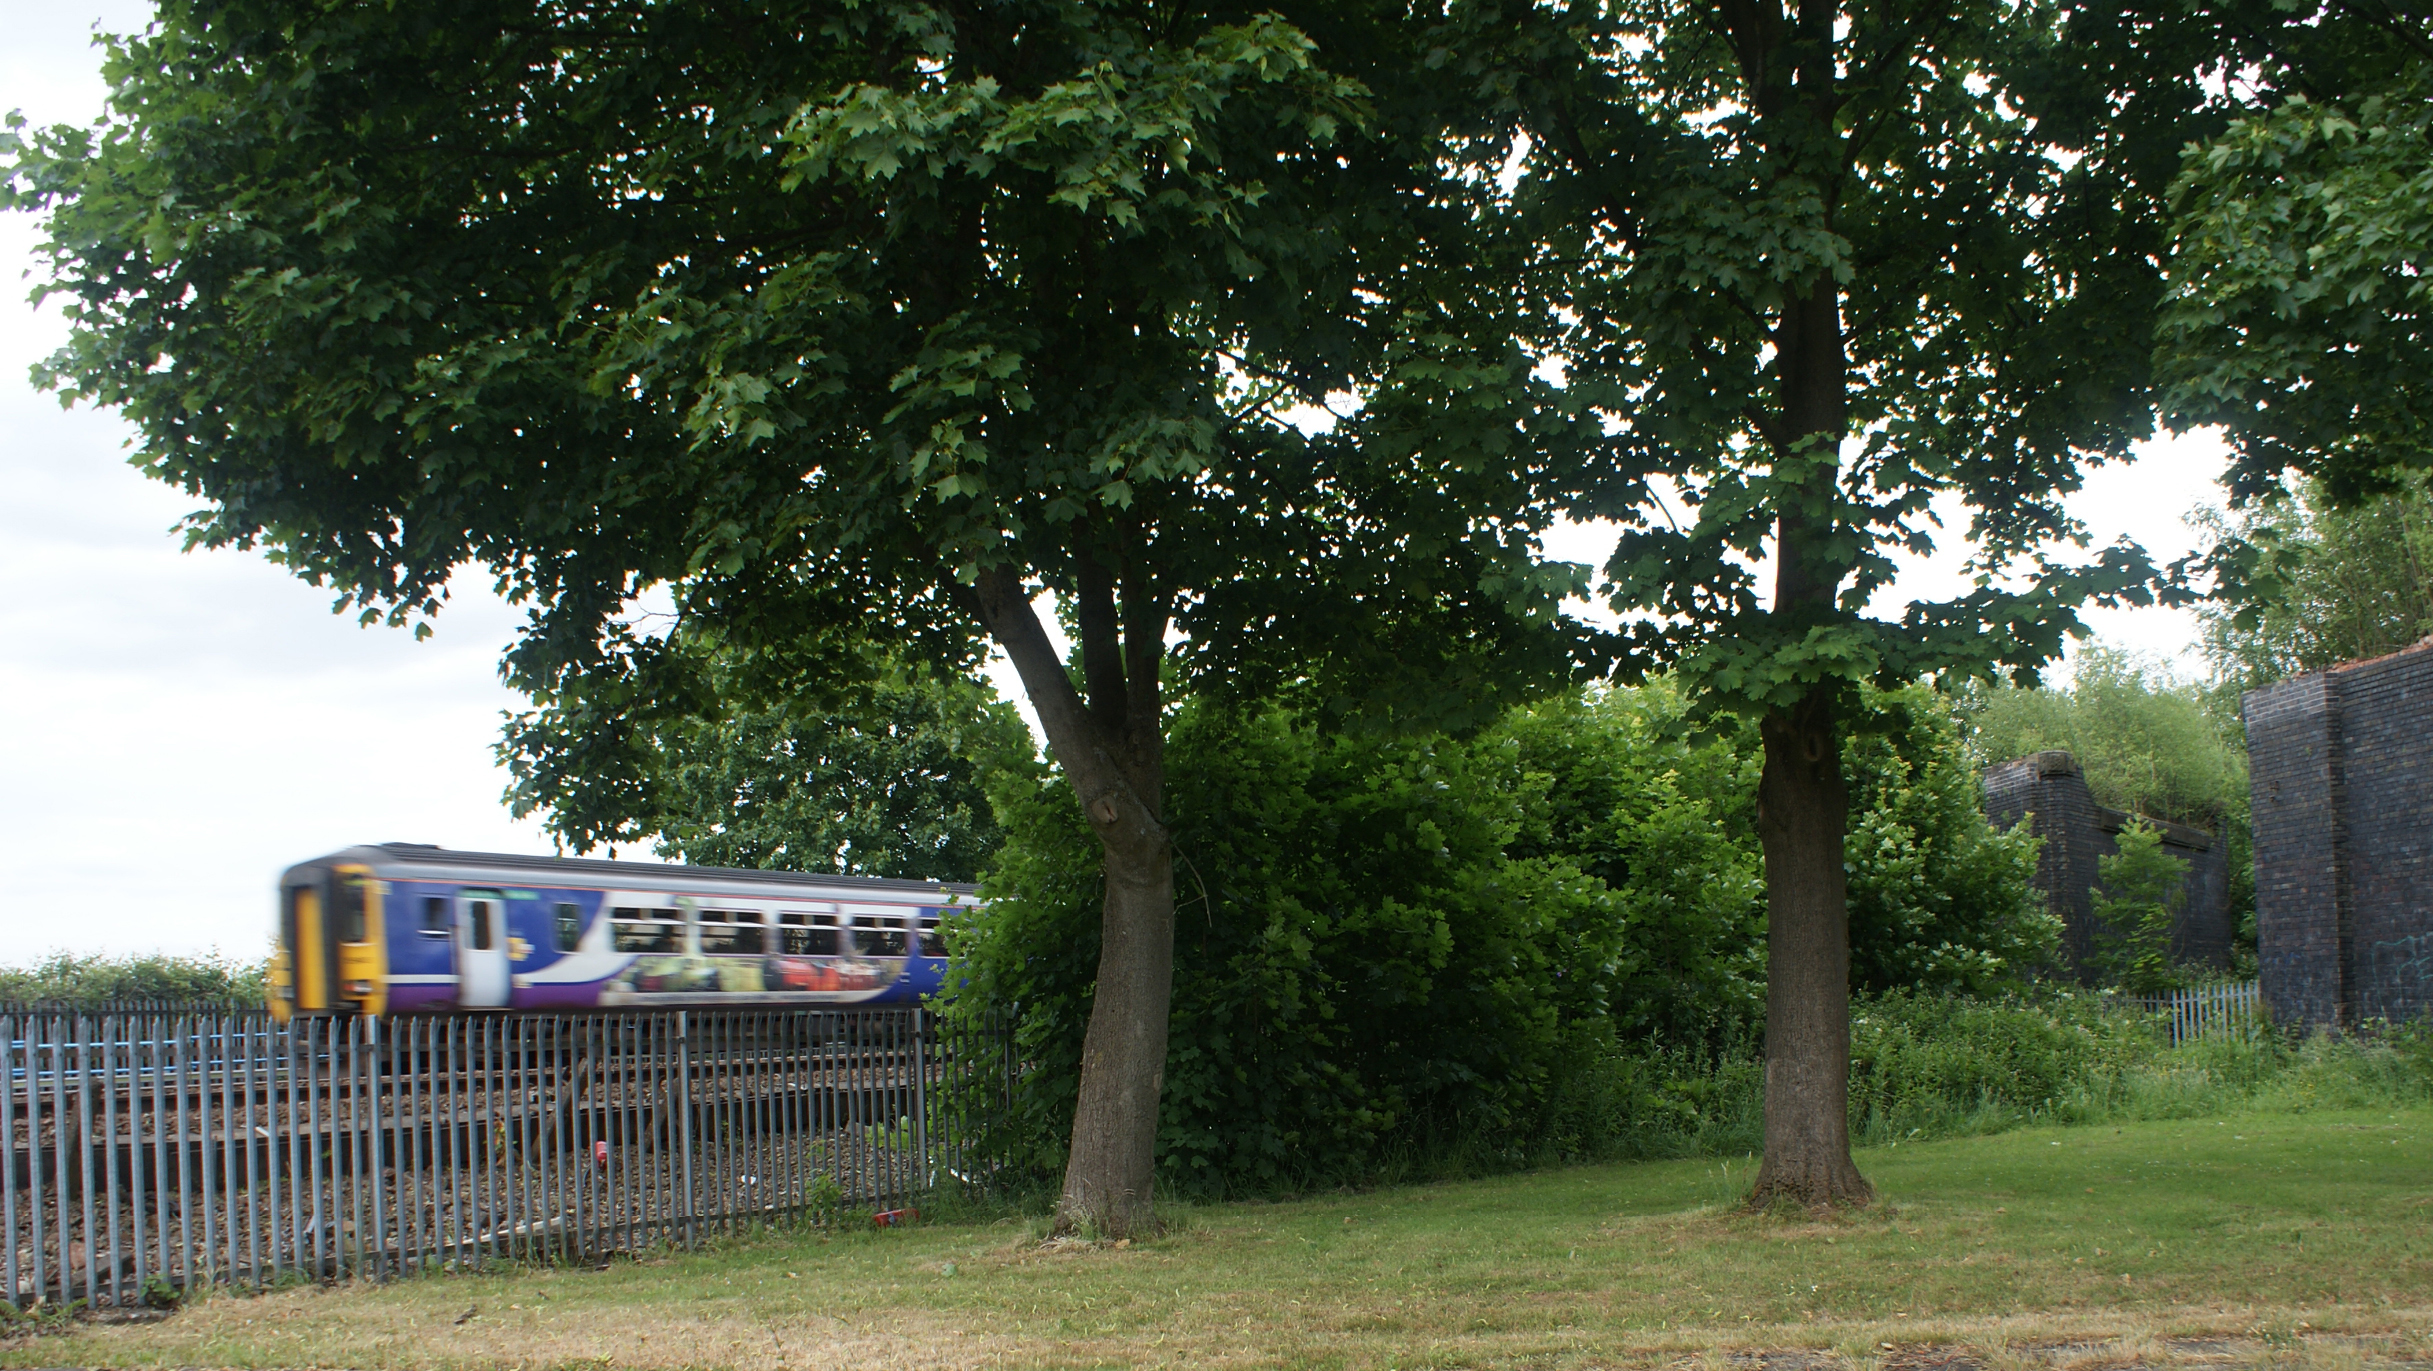 Trees and train